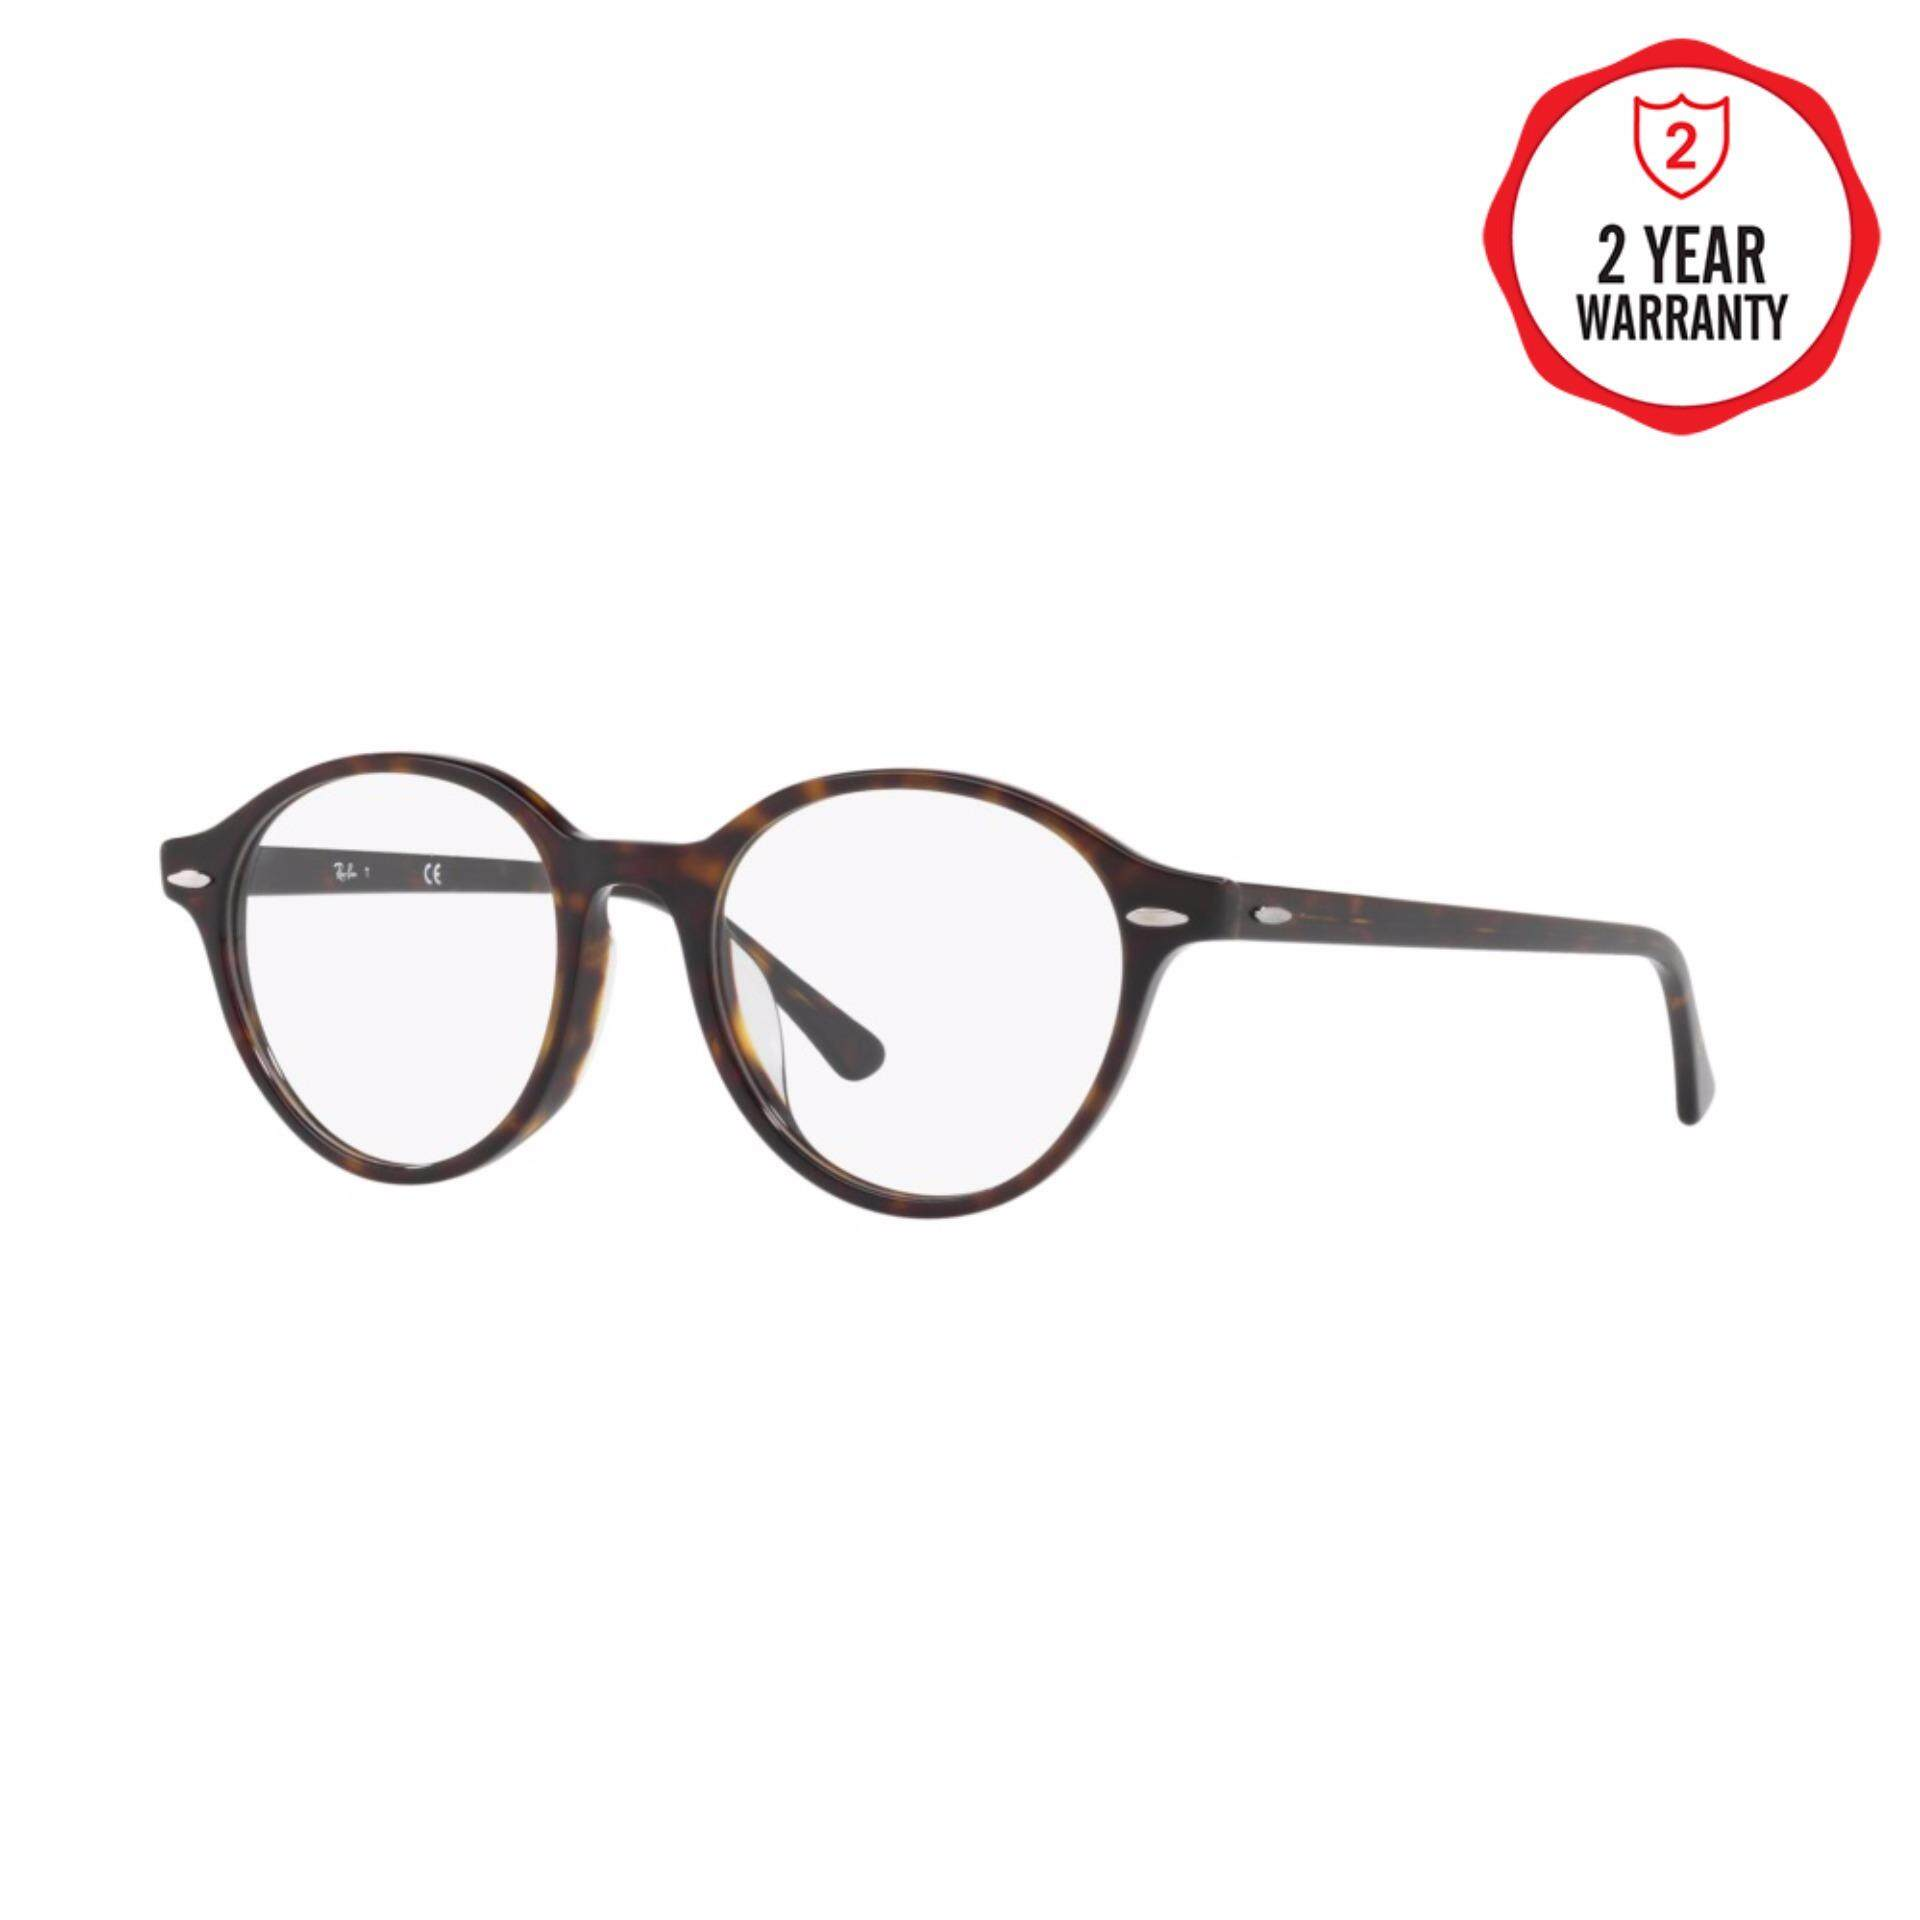 Ray Ban Products for the Best Price in Malaysia 220f48bae8